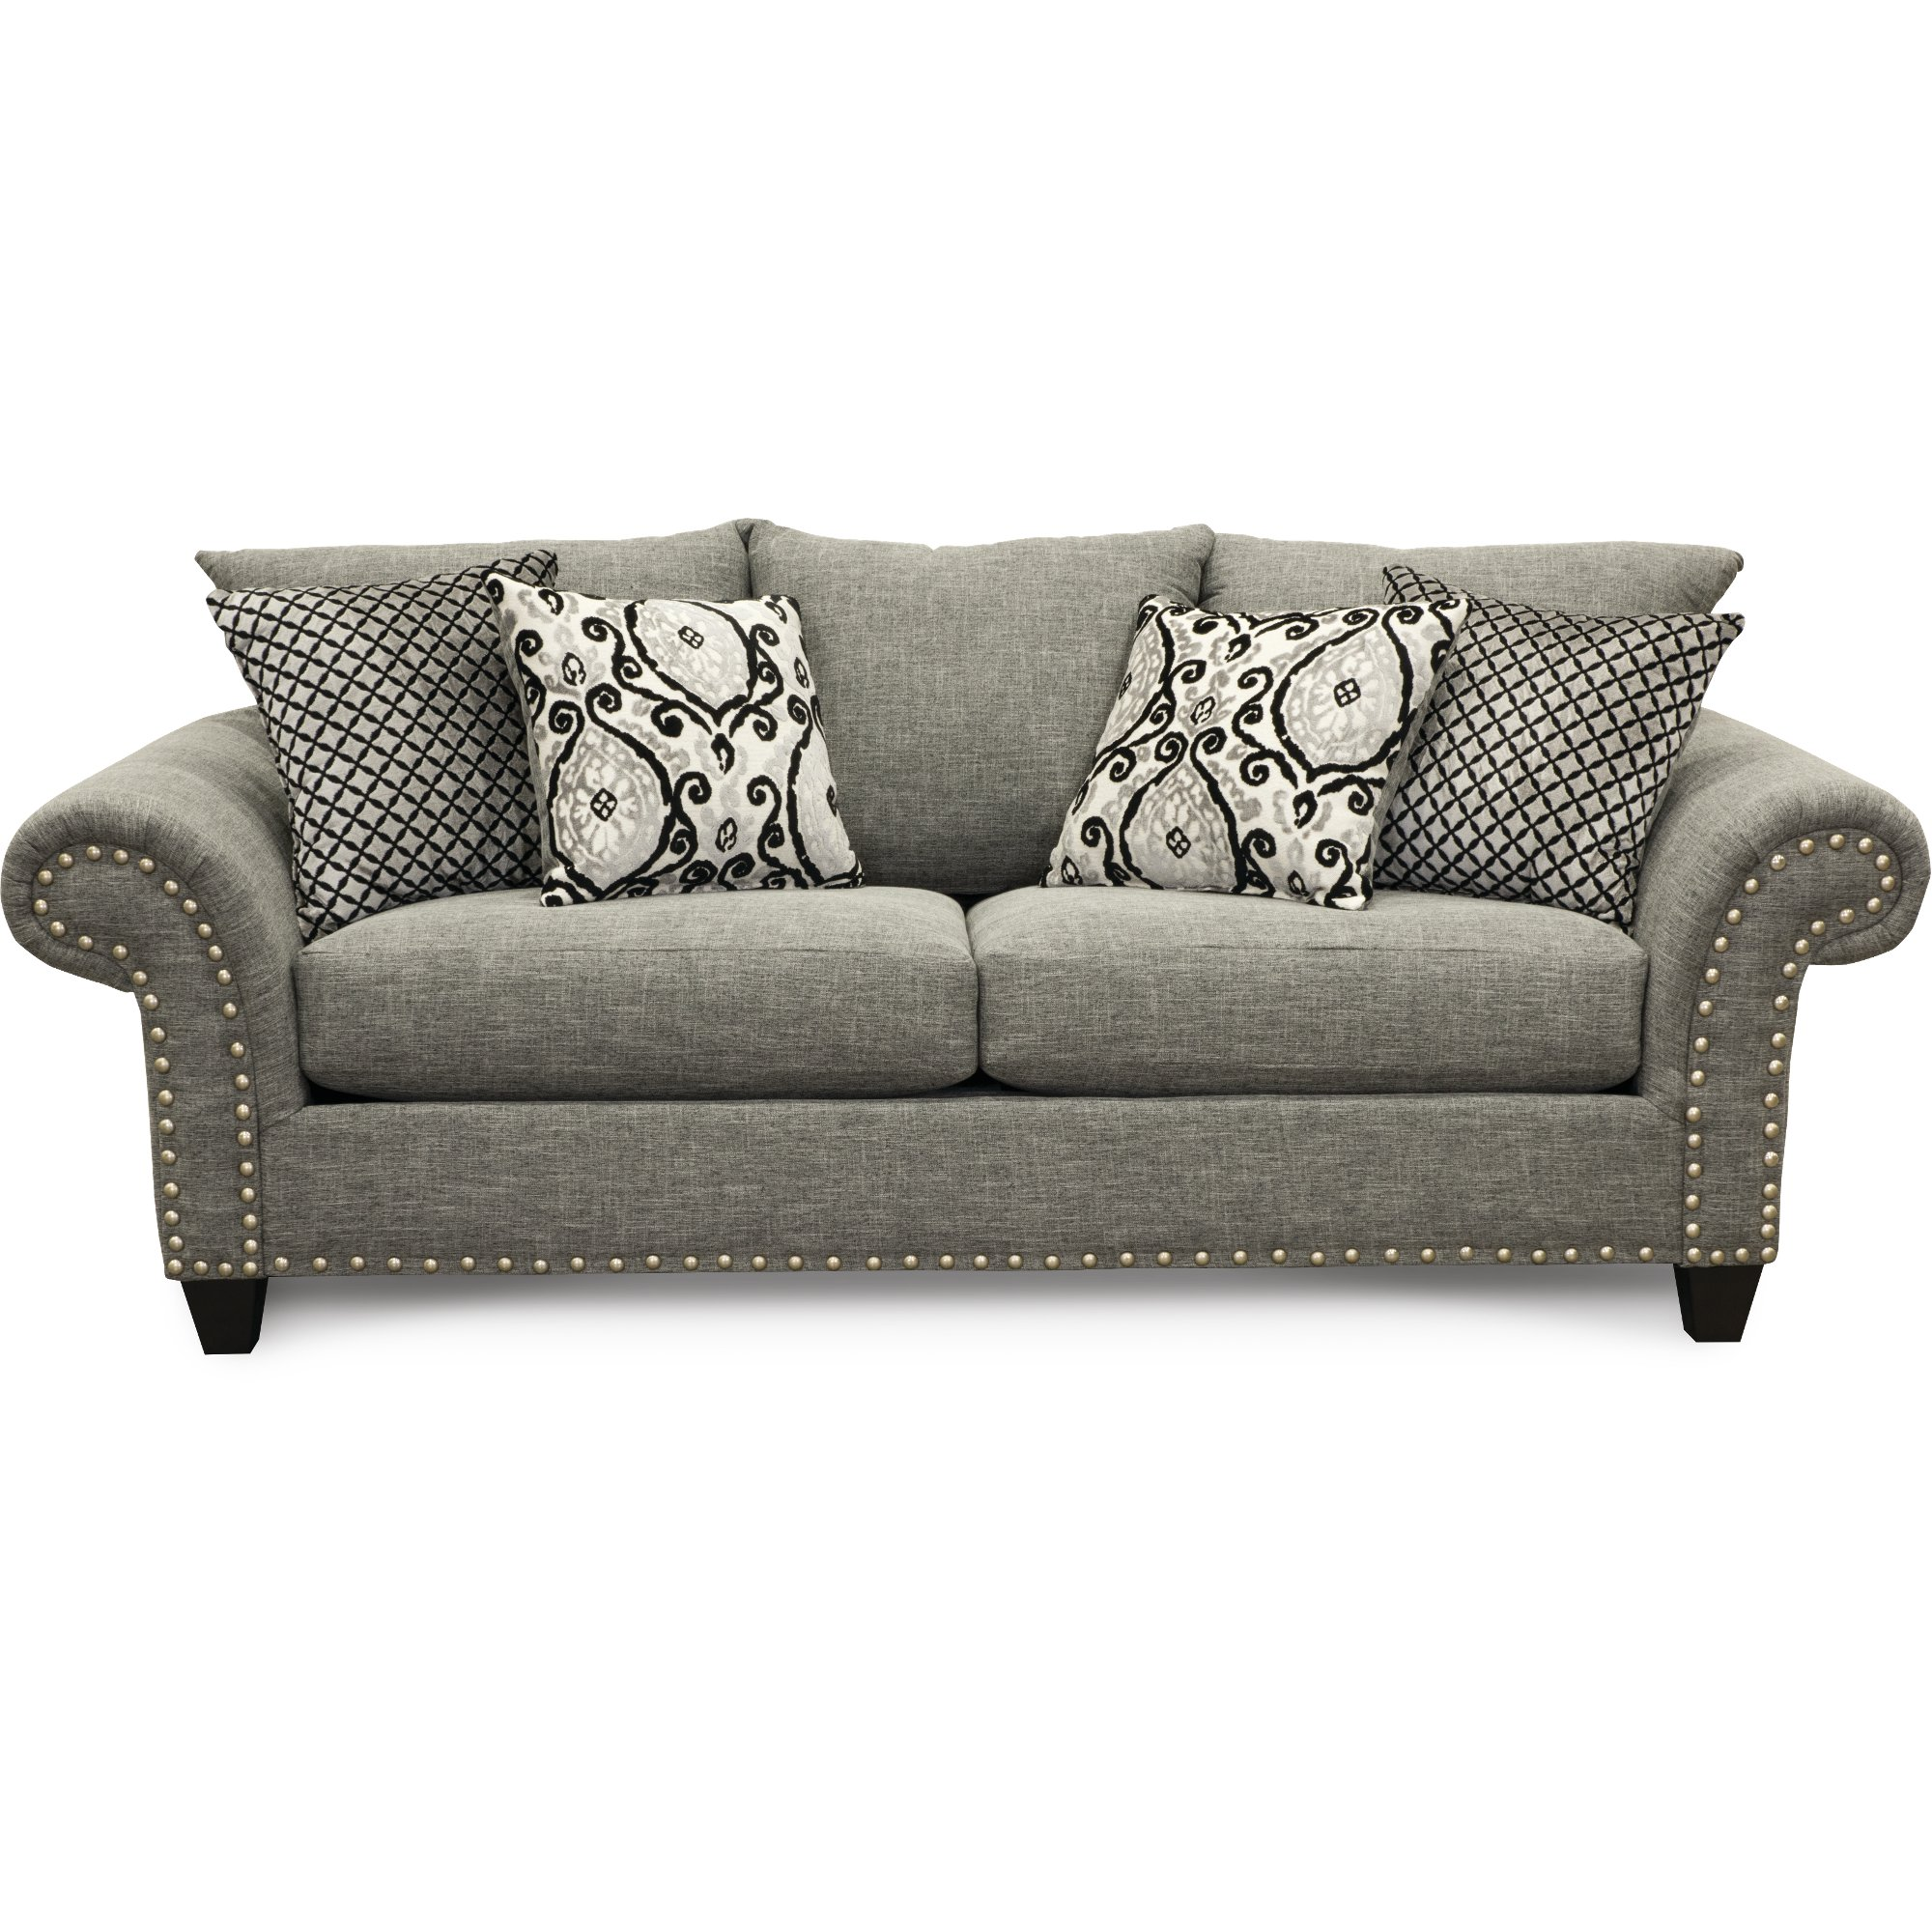 Casual Traditional Carbon Gray Sofa   Paradigm | RC Willey Furniture Store